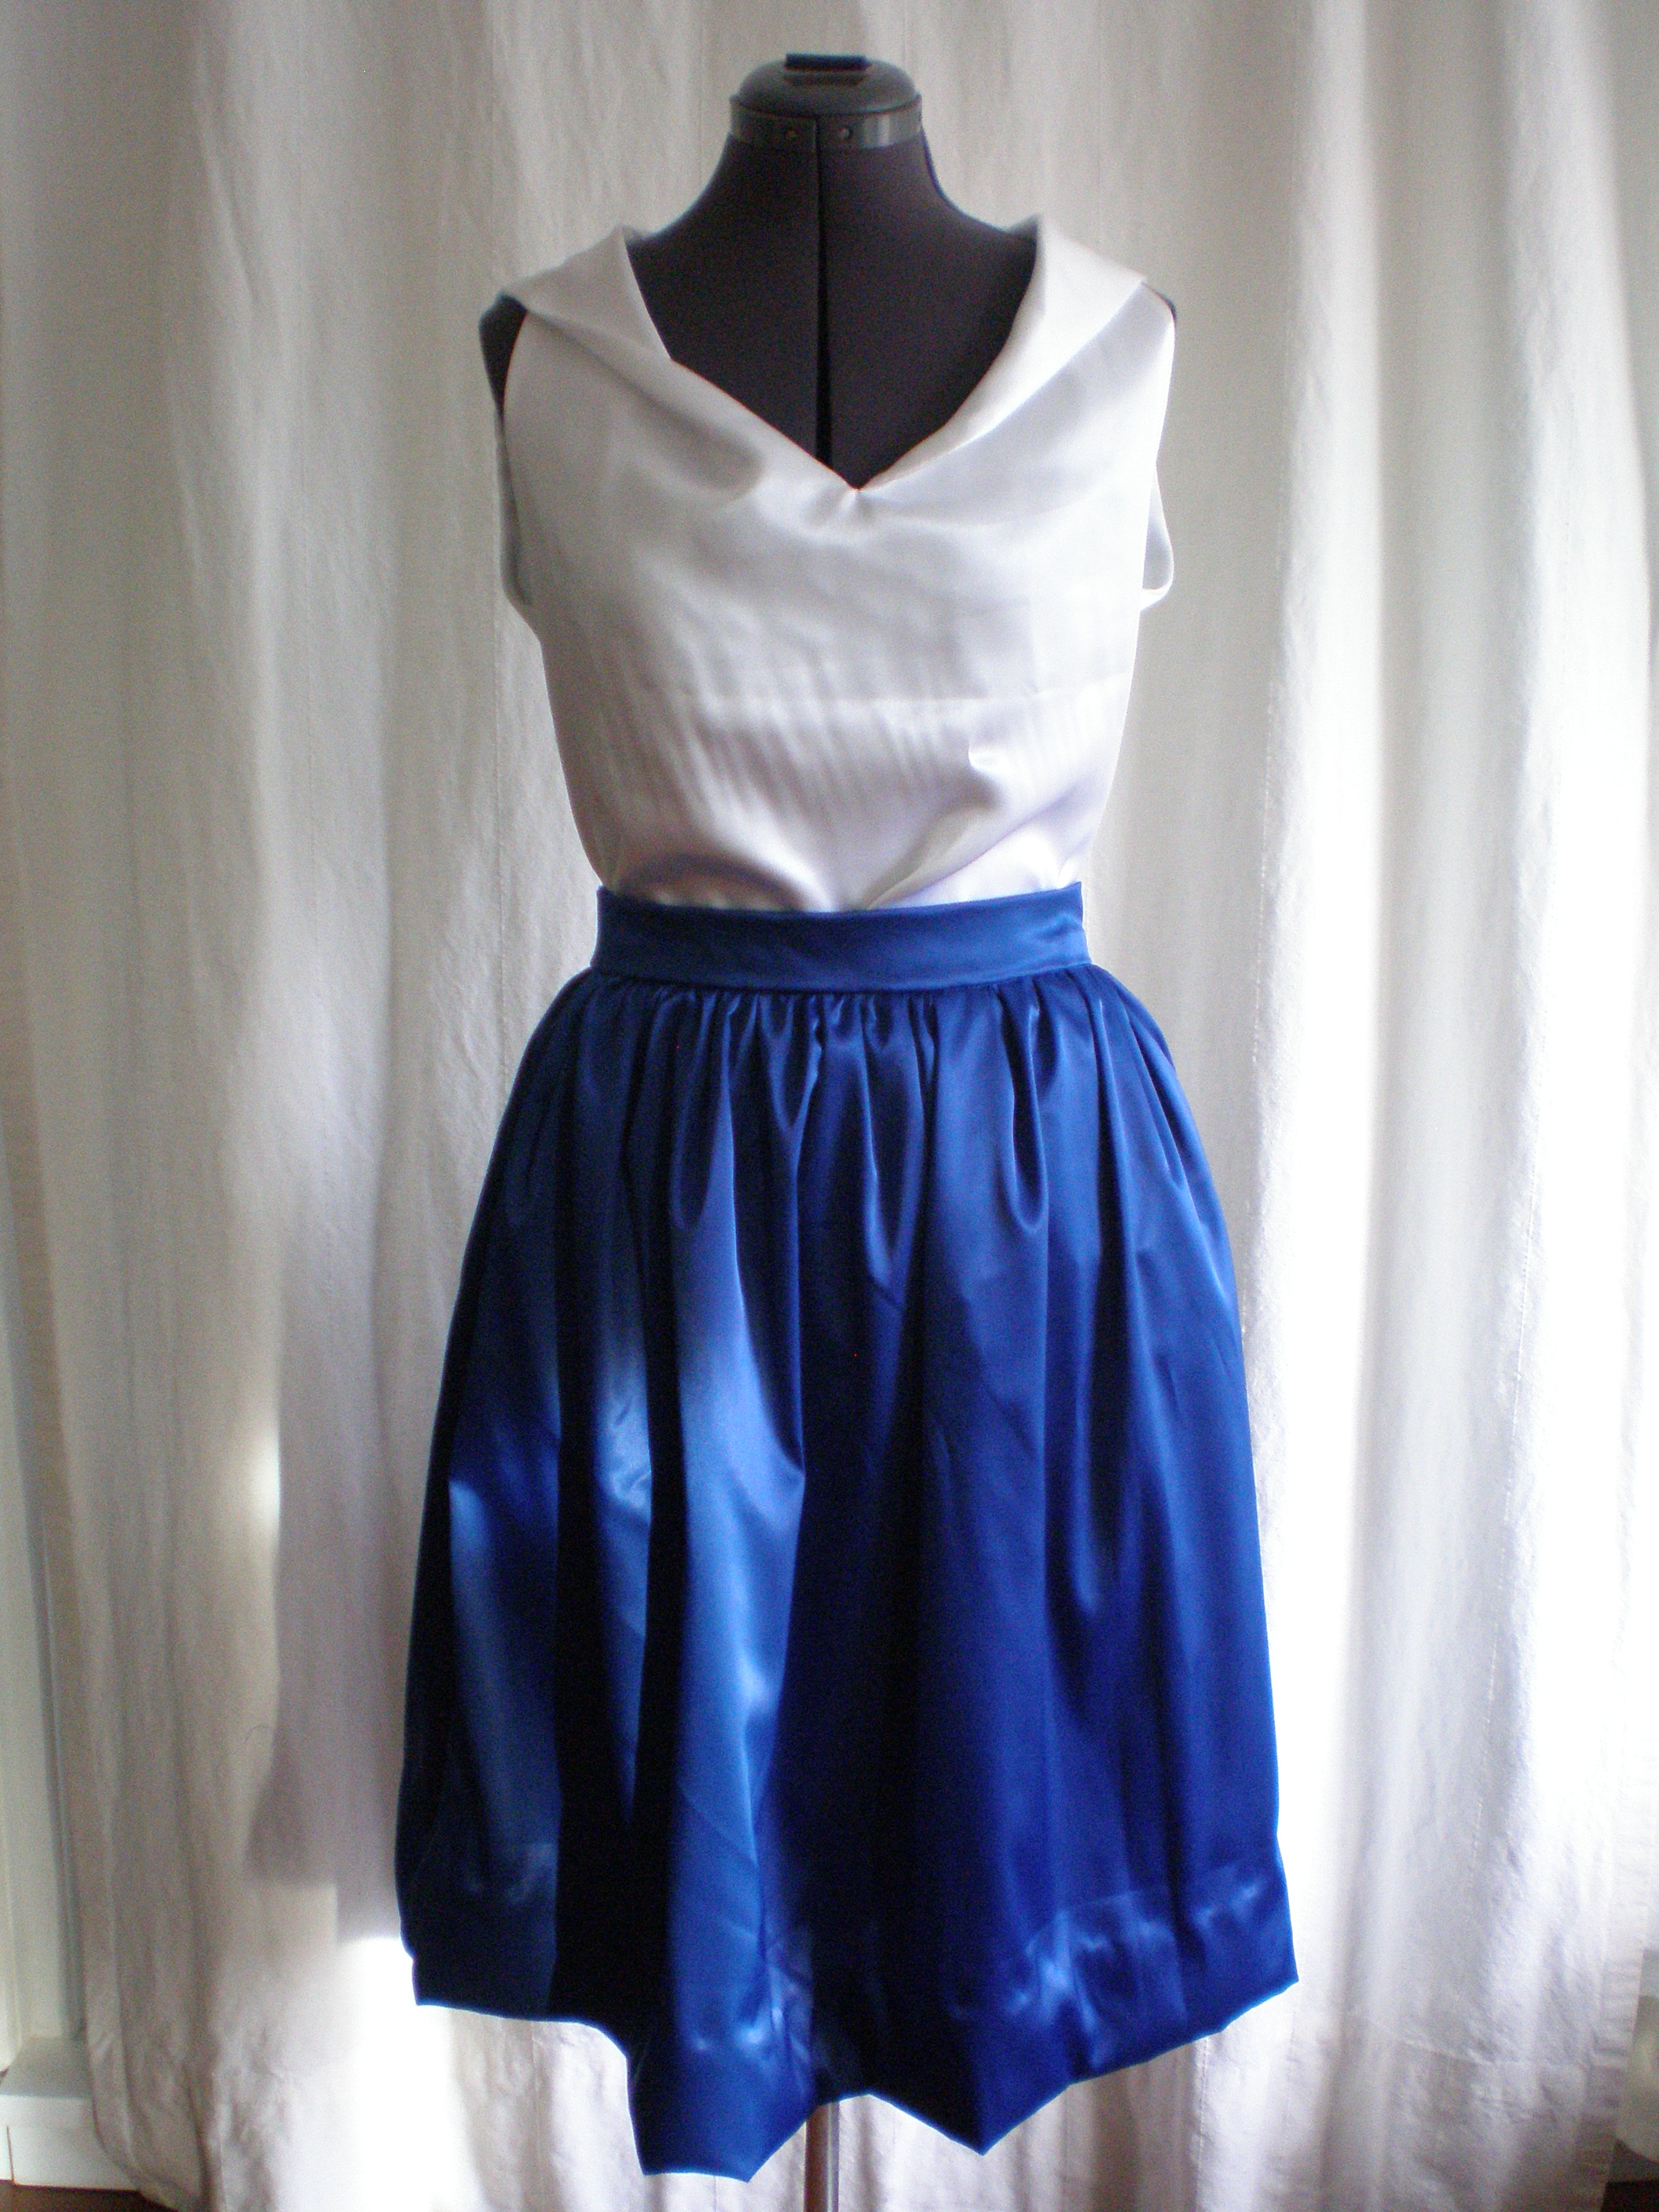 Satin Gathered Skirt Sewing Projects Burdastyle Com